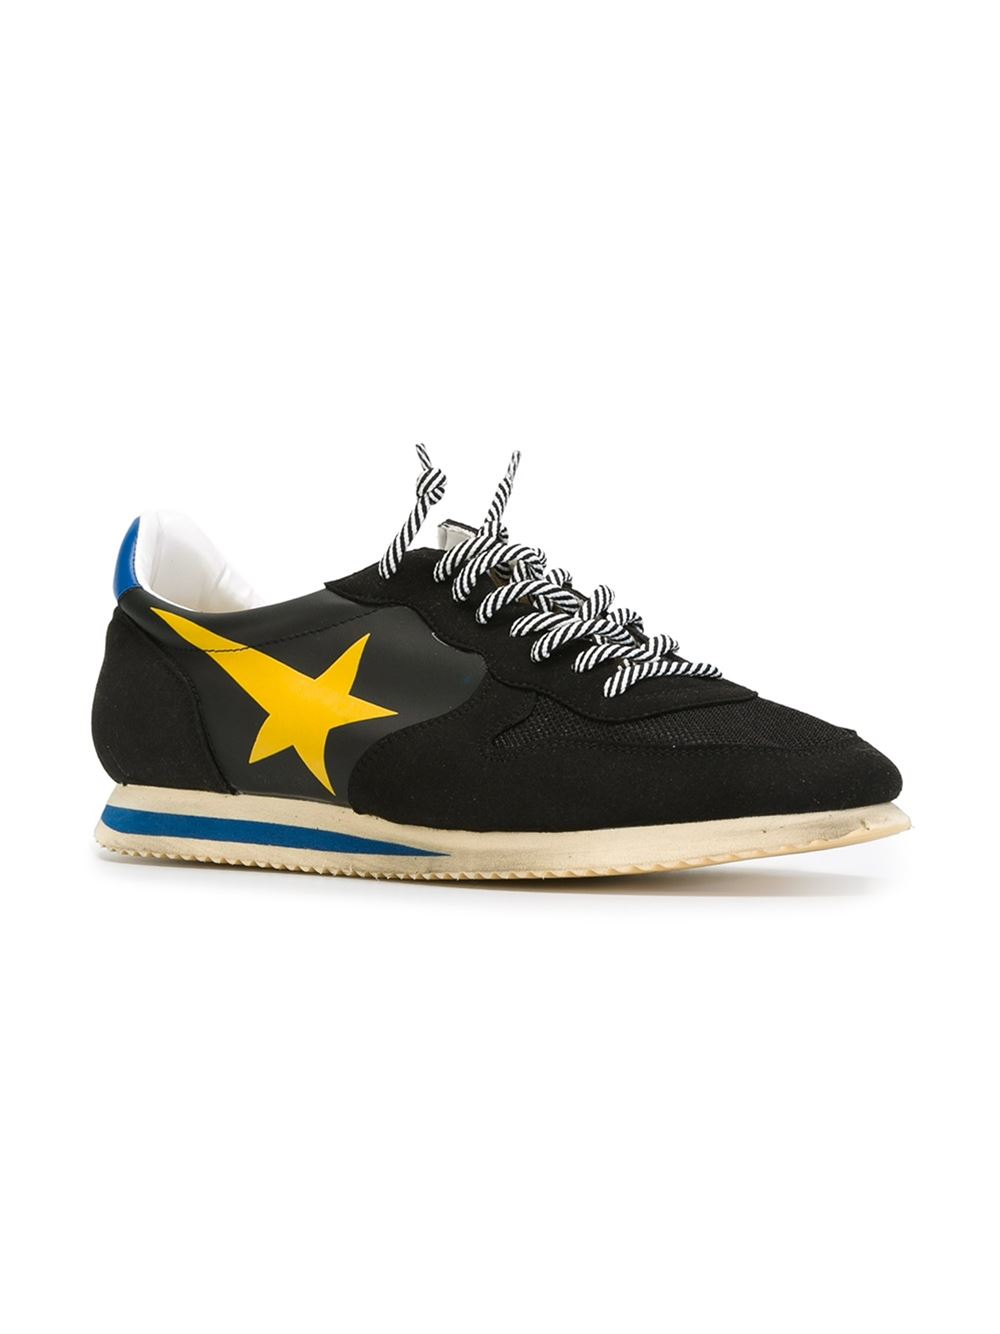 golden goose deluxe brand 39 haus 39 sneakers in yellow for men black lyst. Black Bedroom Furniture Sets. Home Design Ideas